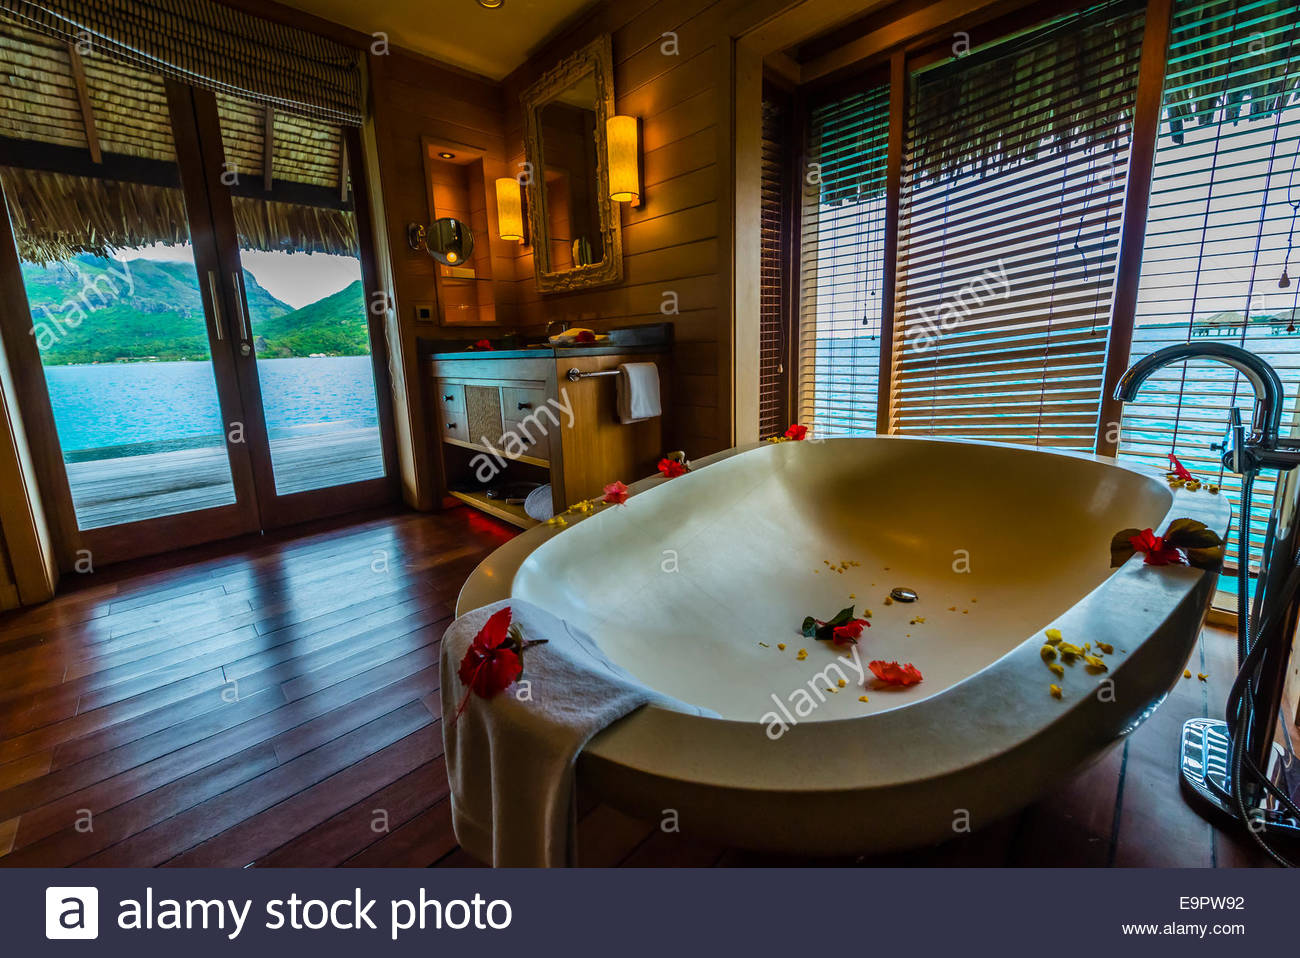 Interior View Of Overwater Bungalow Suite With Plunge Pool